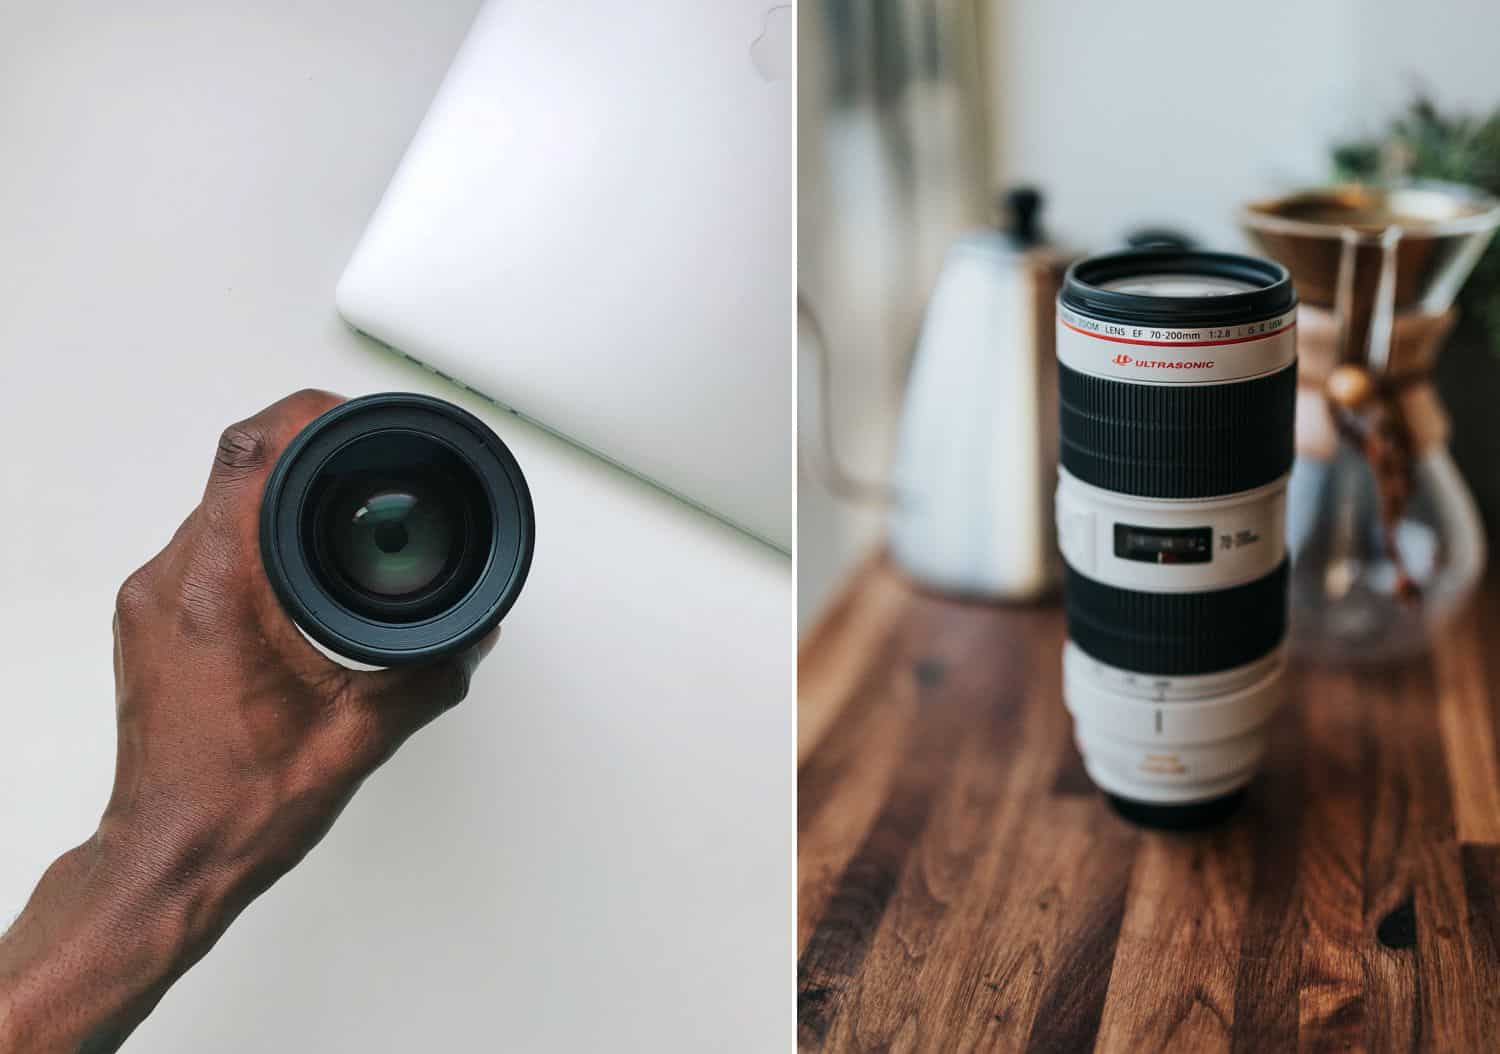 A hand holds a lens above a white table. A telephoto lens sits on a wooden table.